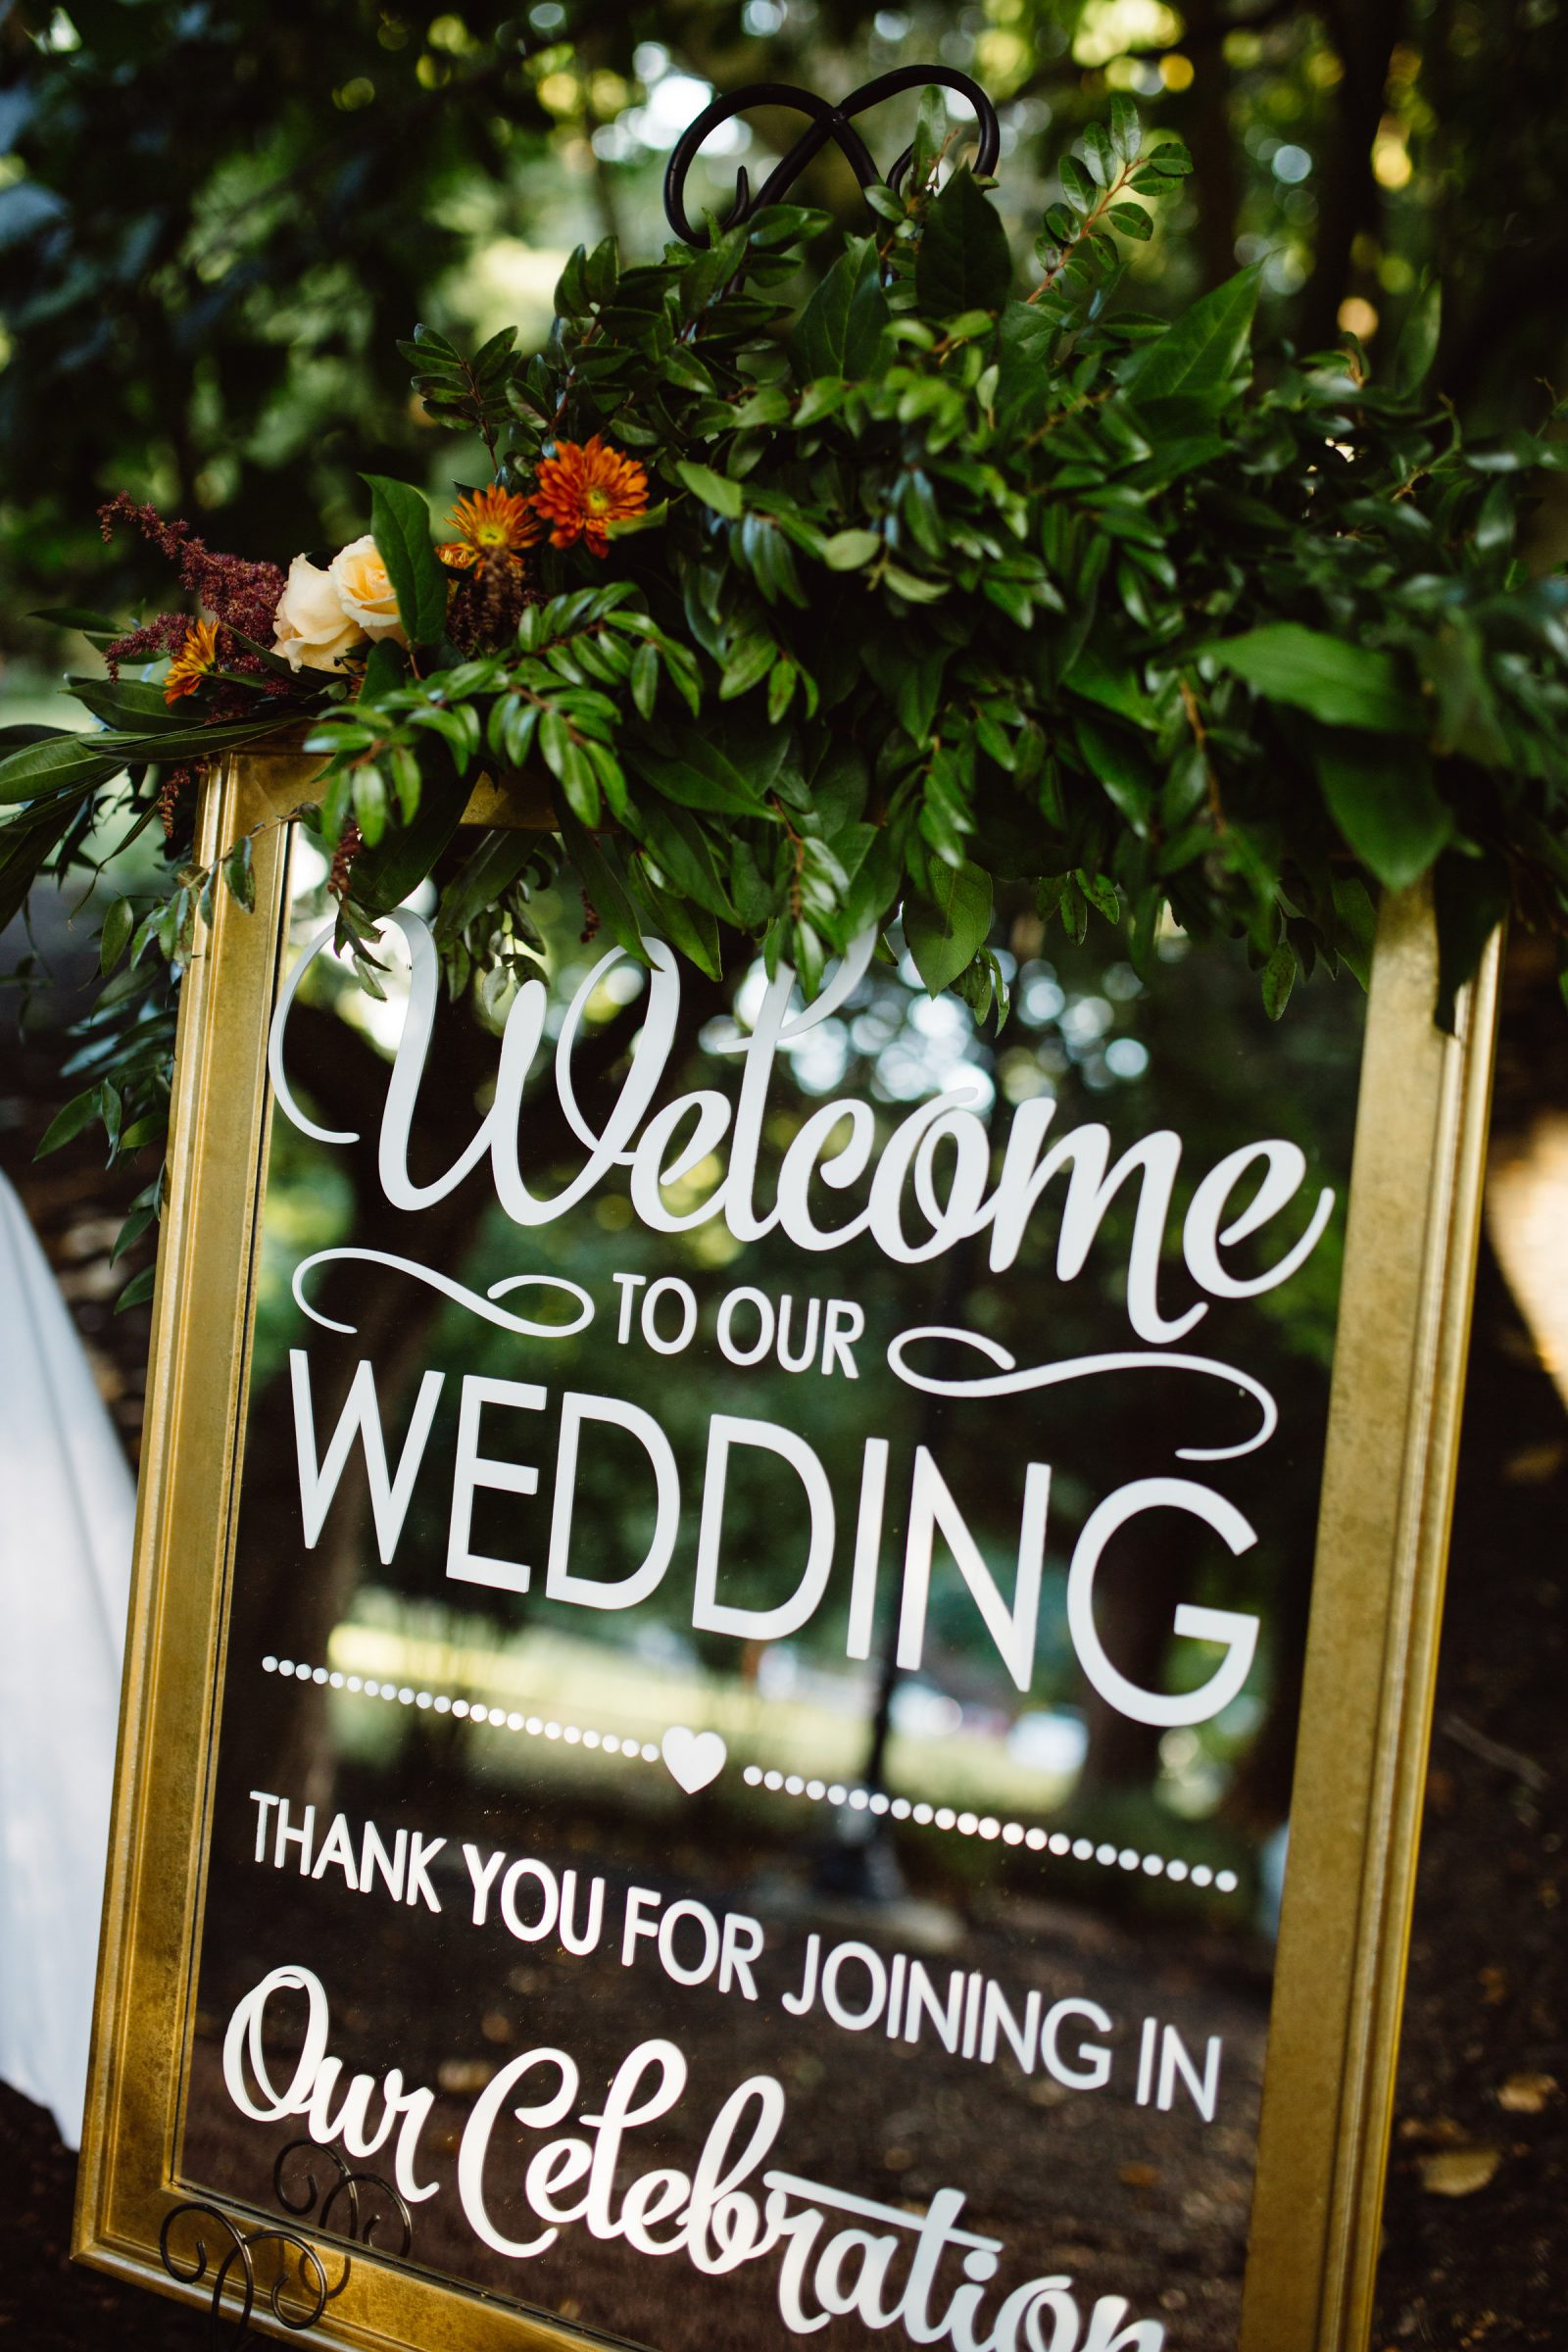 Welcome to Our Wedding Mirror Sign at Ridgeland Mansion Philadelphia Wedding. Photo by Ali & Paul Co.